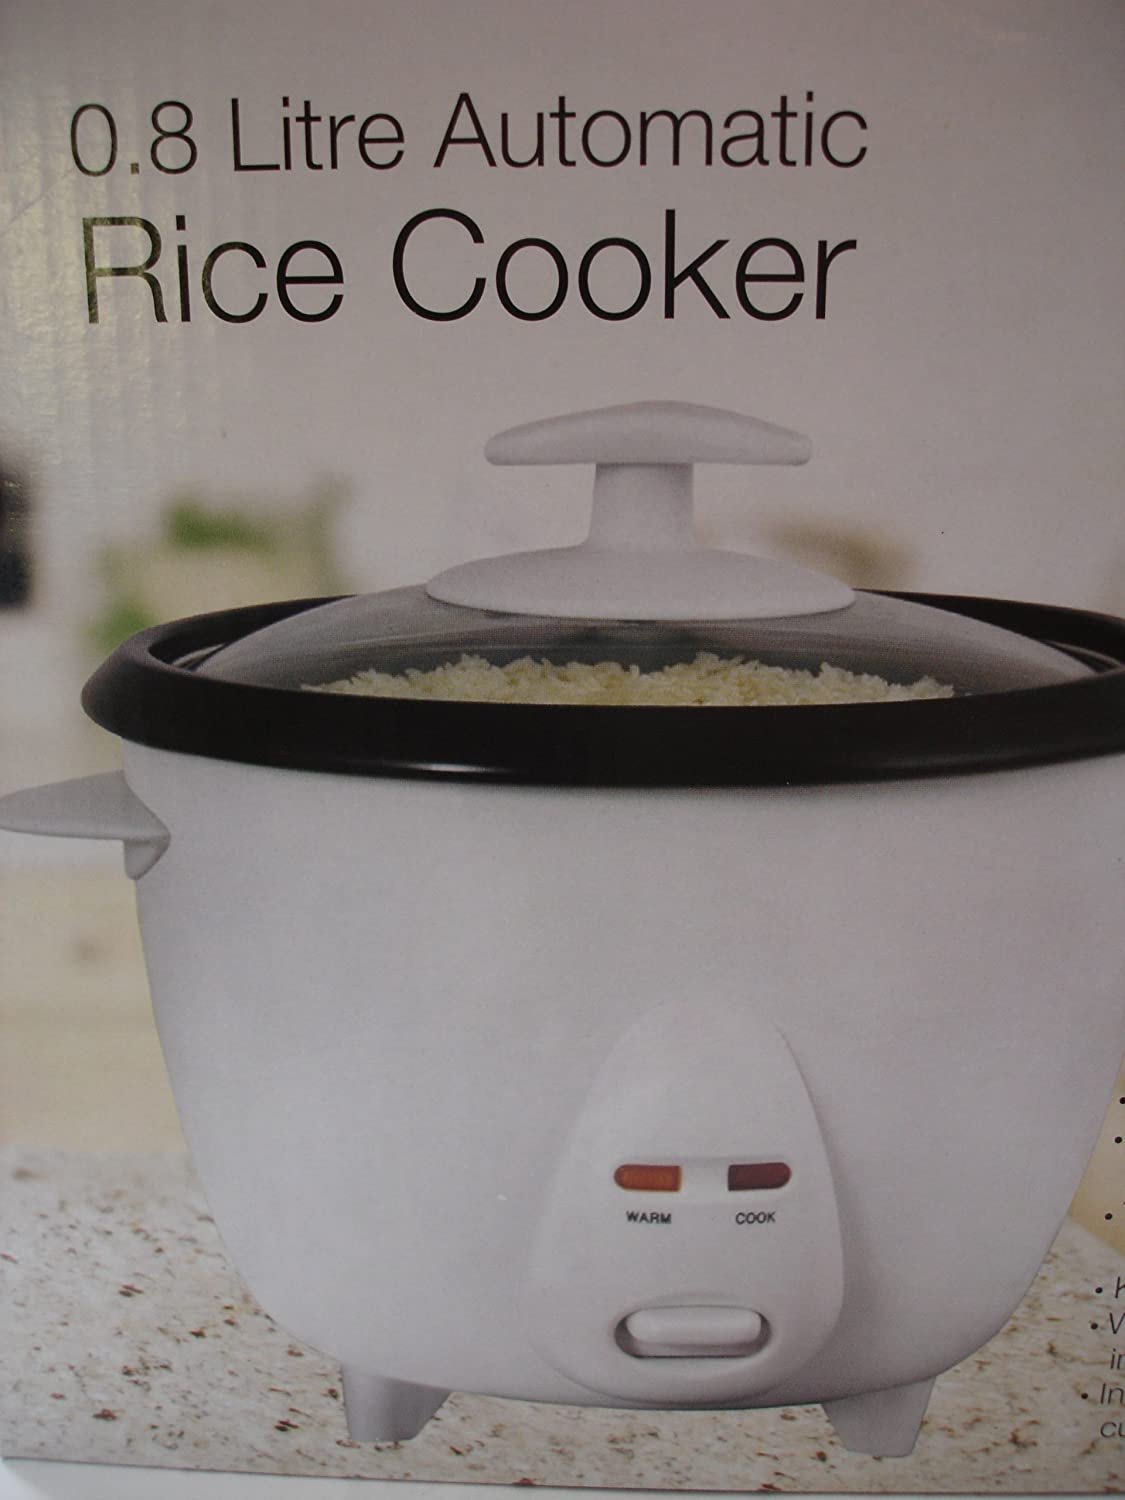 ELPINE AUTOMATIC RICE COOKER 0.8L NON STICK WITH MEASURING CUP 31201